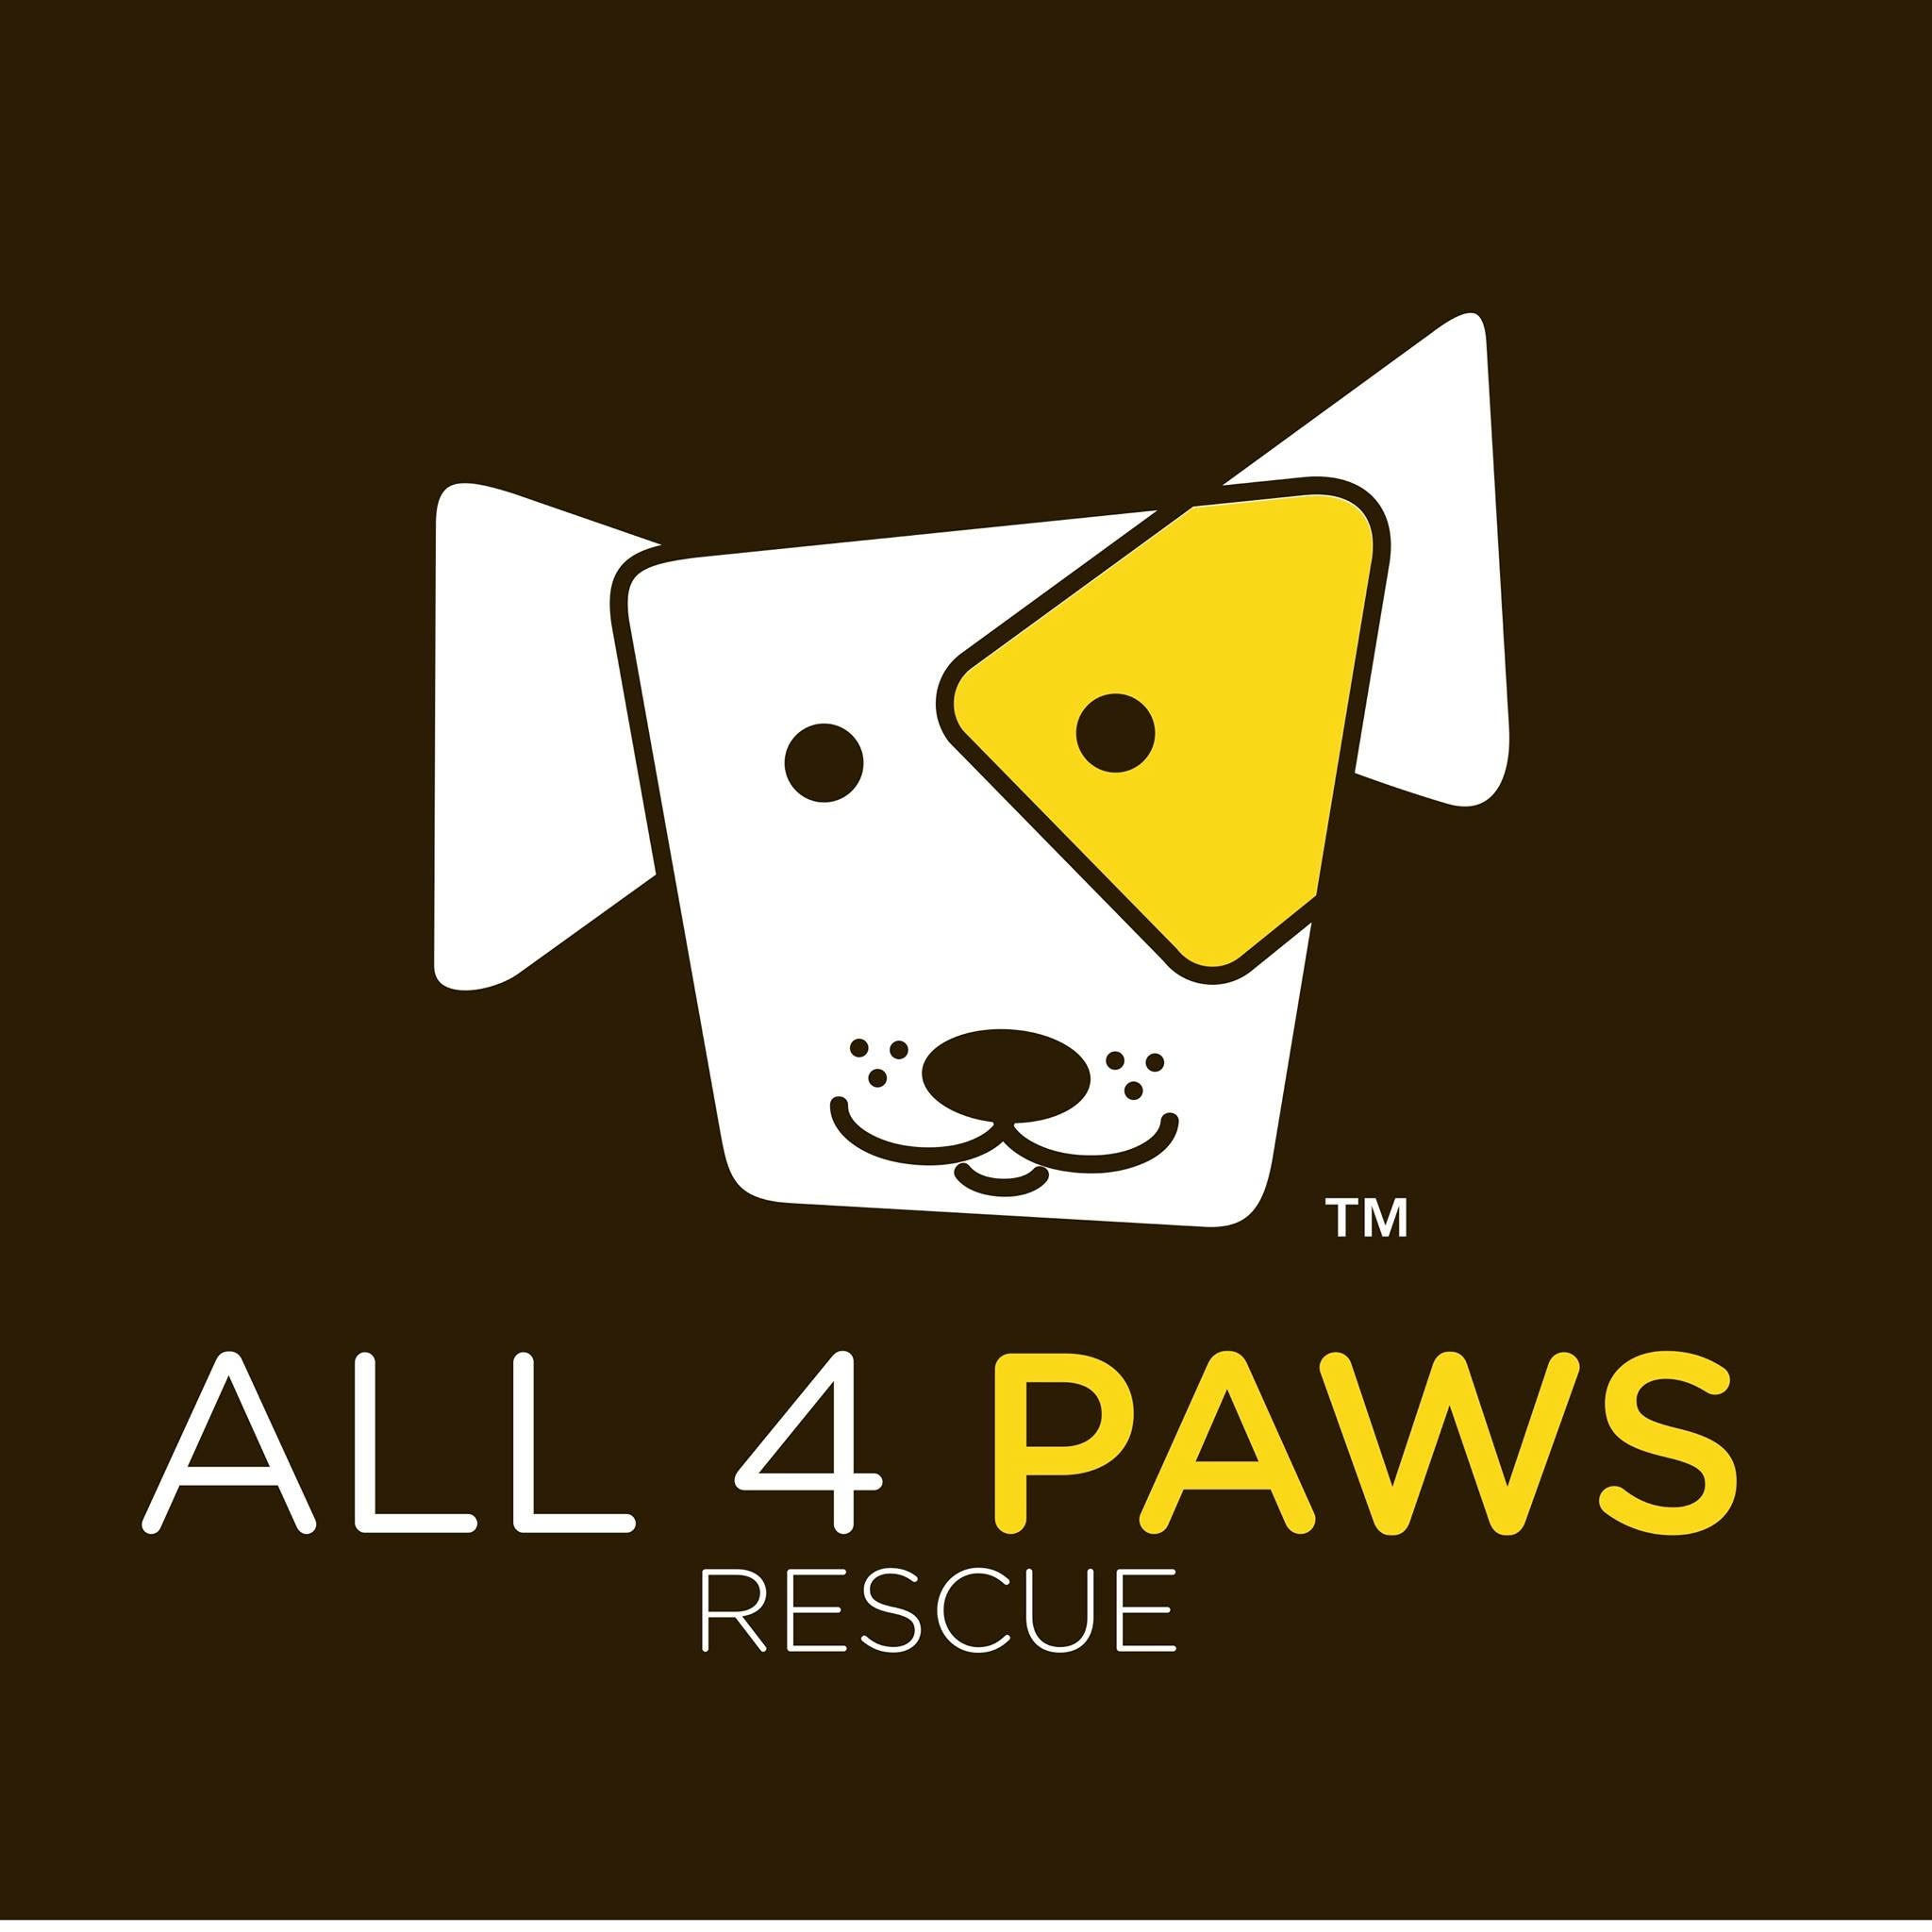 All 4 Paws Rescue